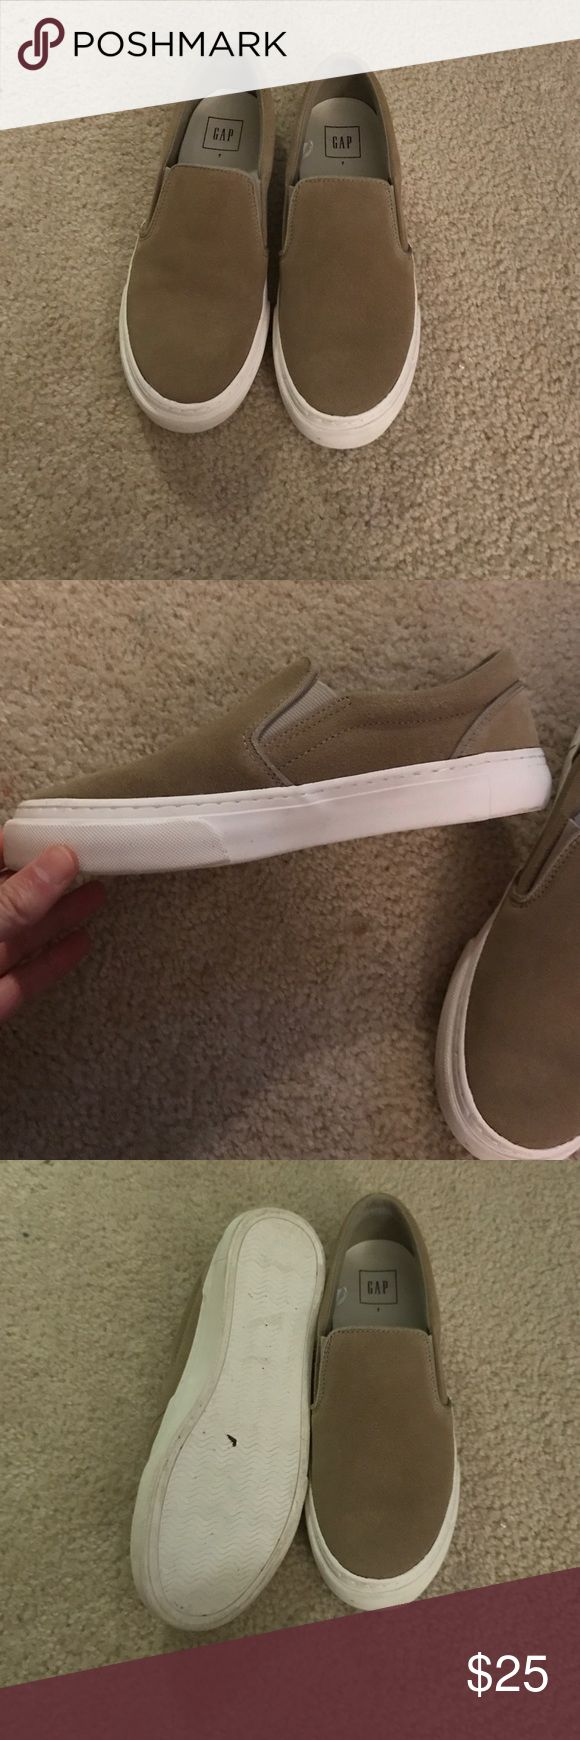 Gap leather slip on shoes in sand size 7 Gap leather slip on shoes in sand size 7 excellent condition GAP Shoes